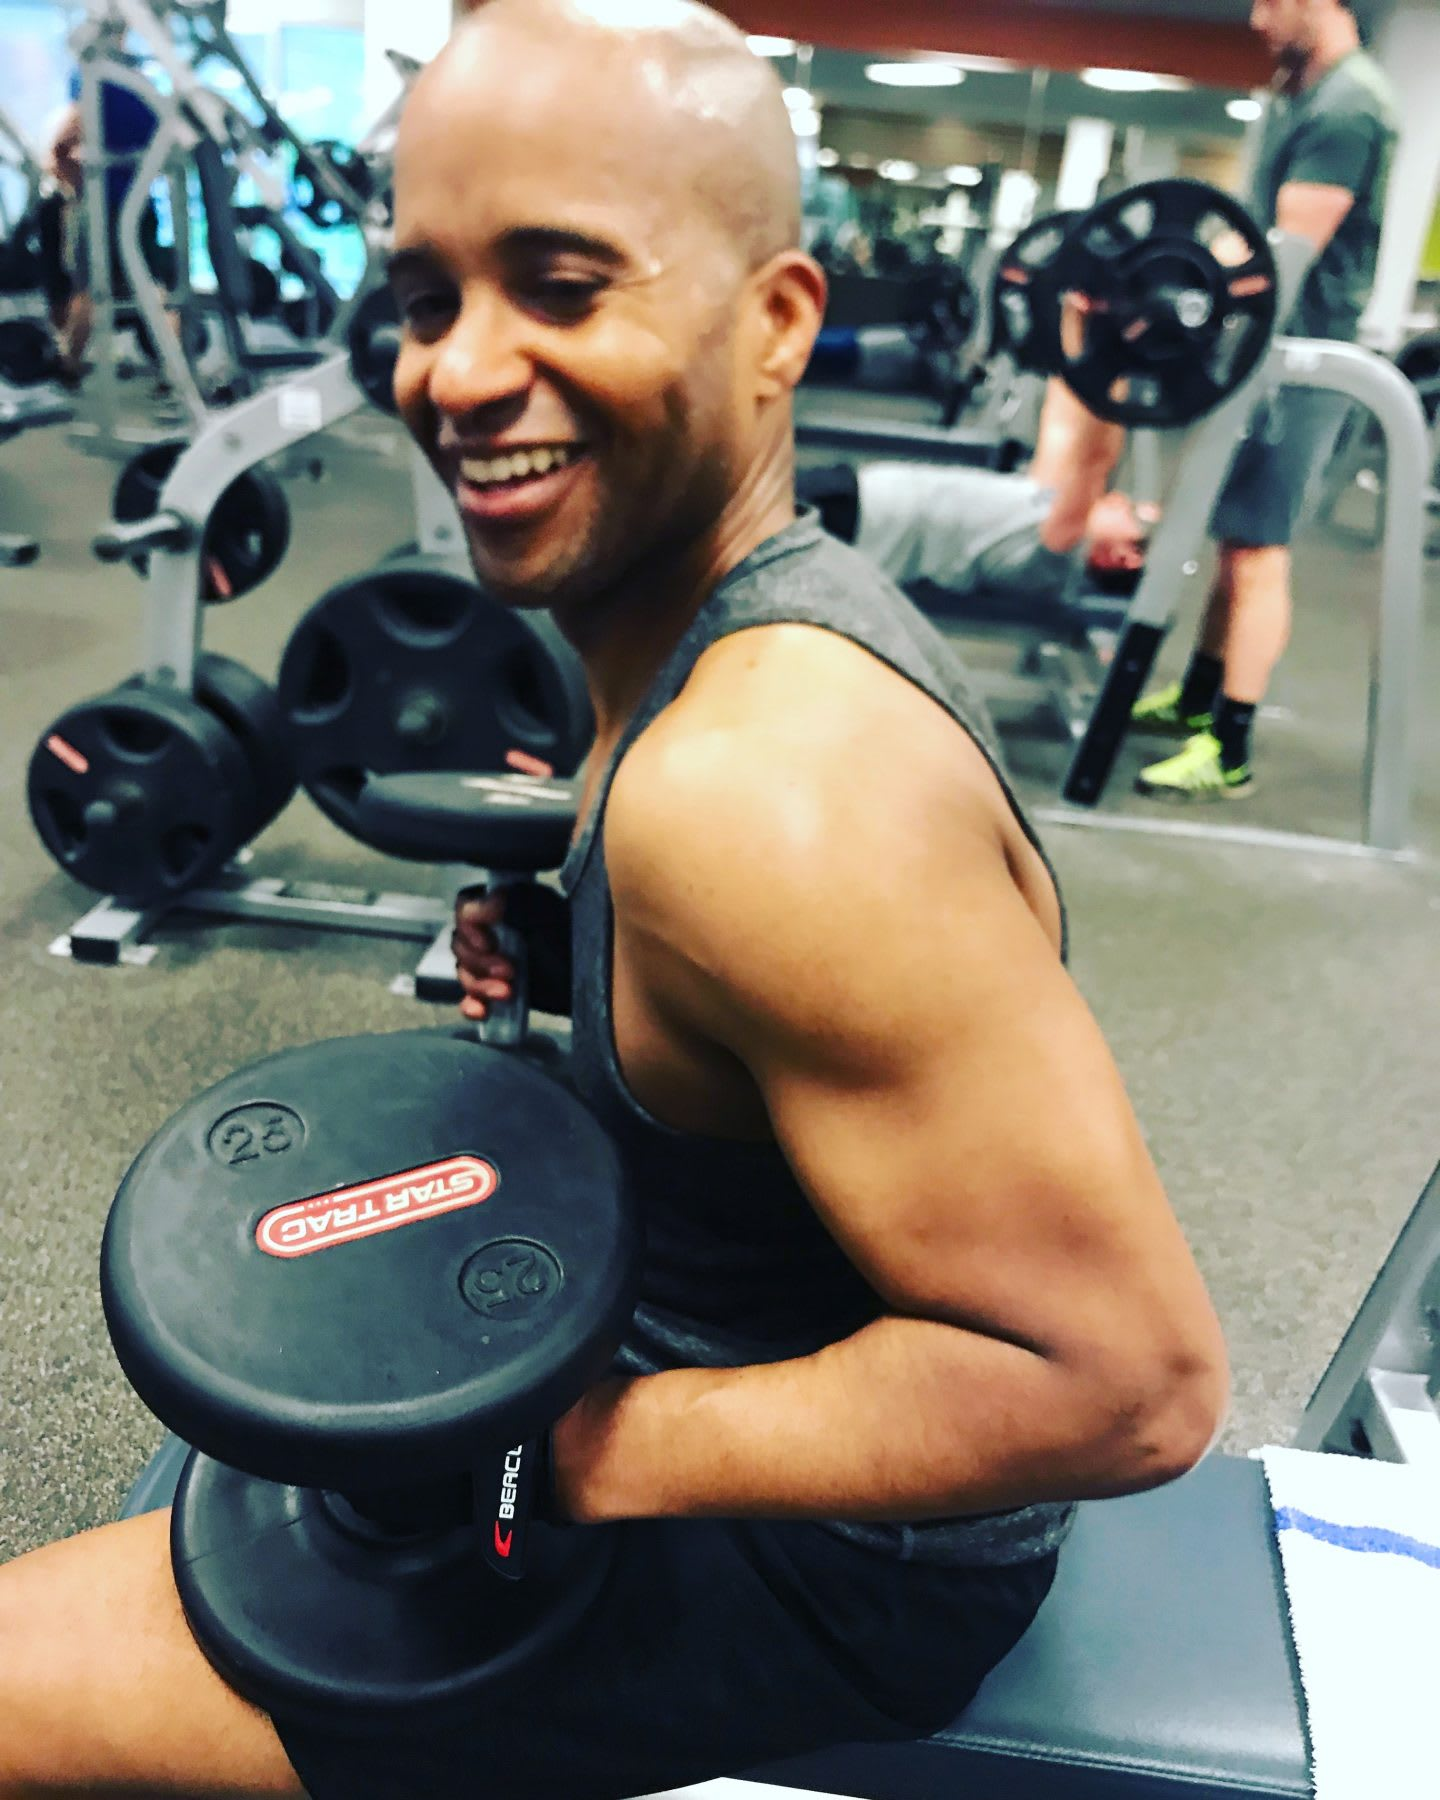 James Gunn happily training. Accountability partner, GamePlanA